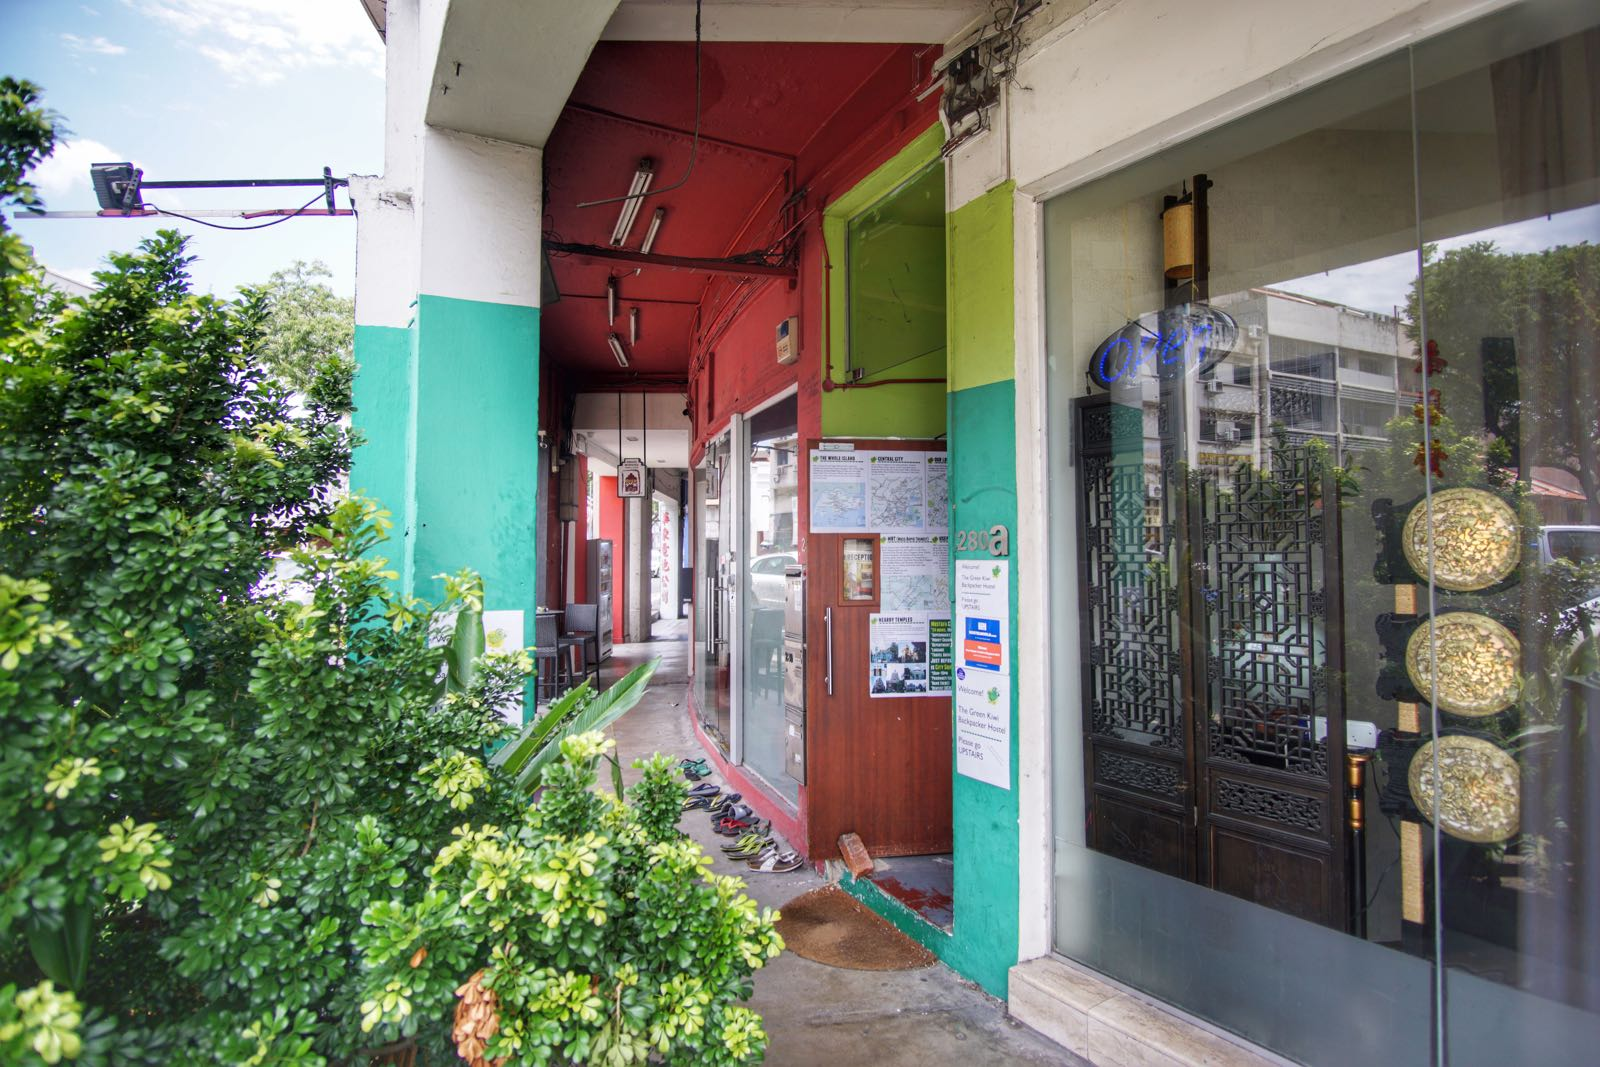 Green Kiwi Backpacker Hostel Lavender Singapore Depan